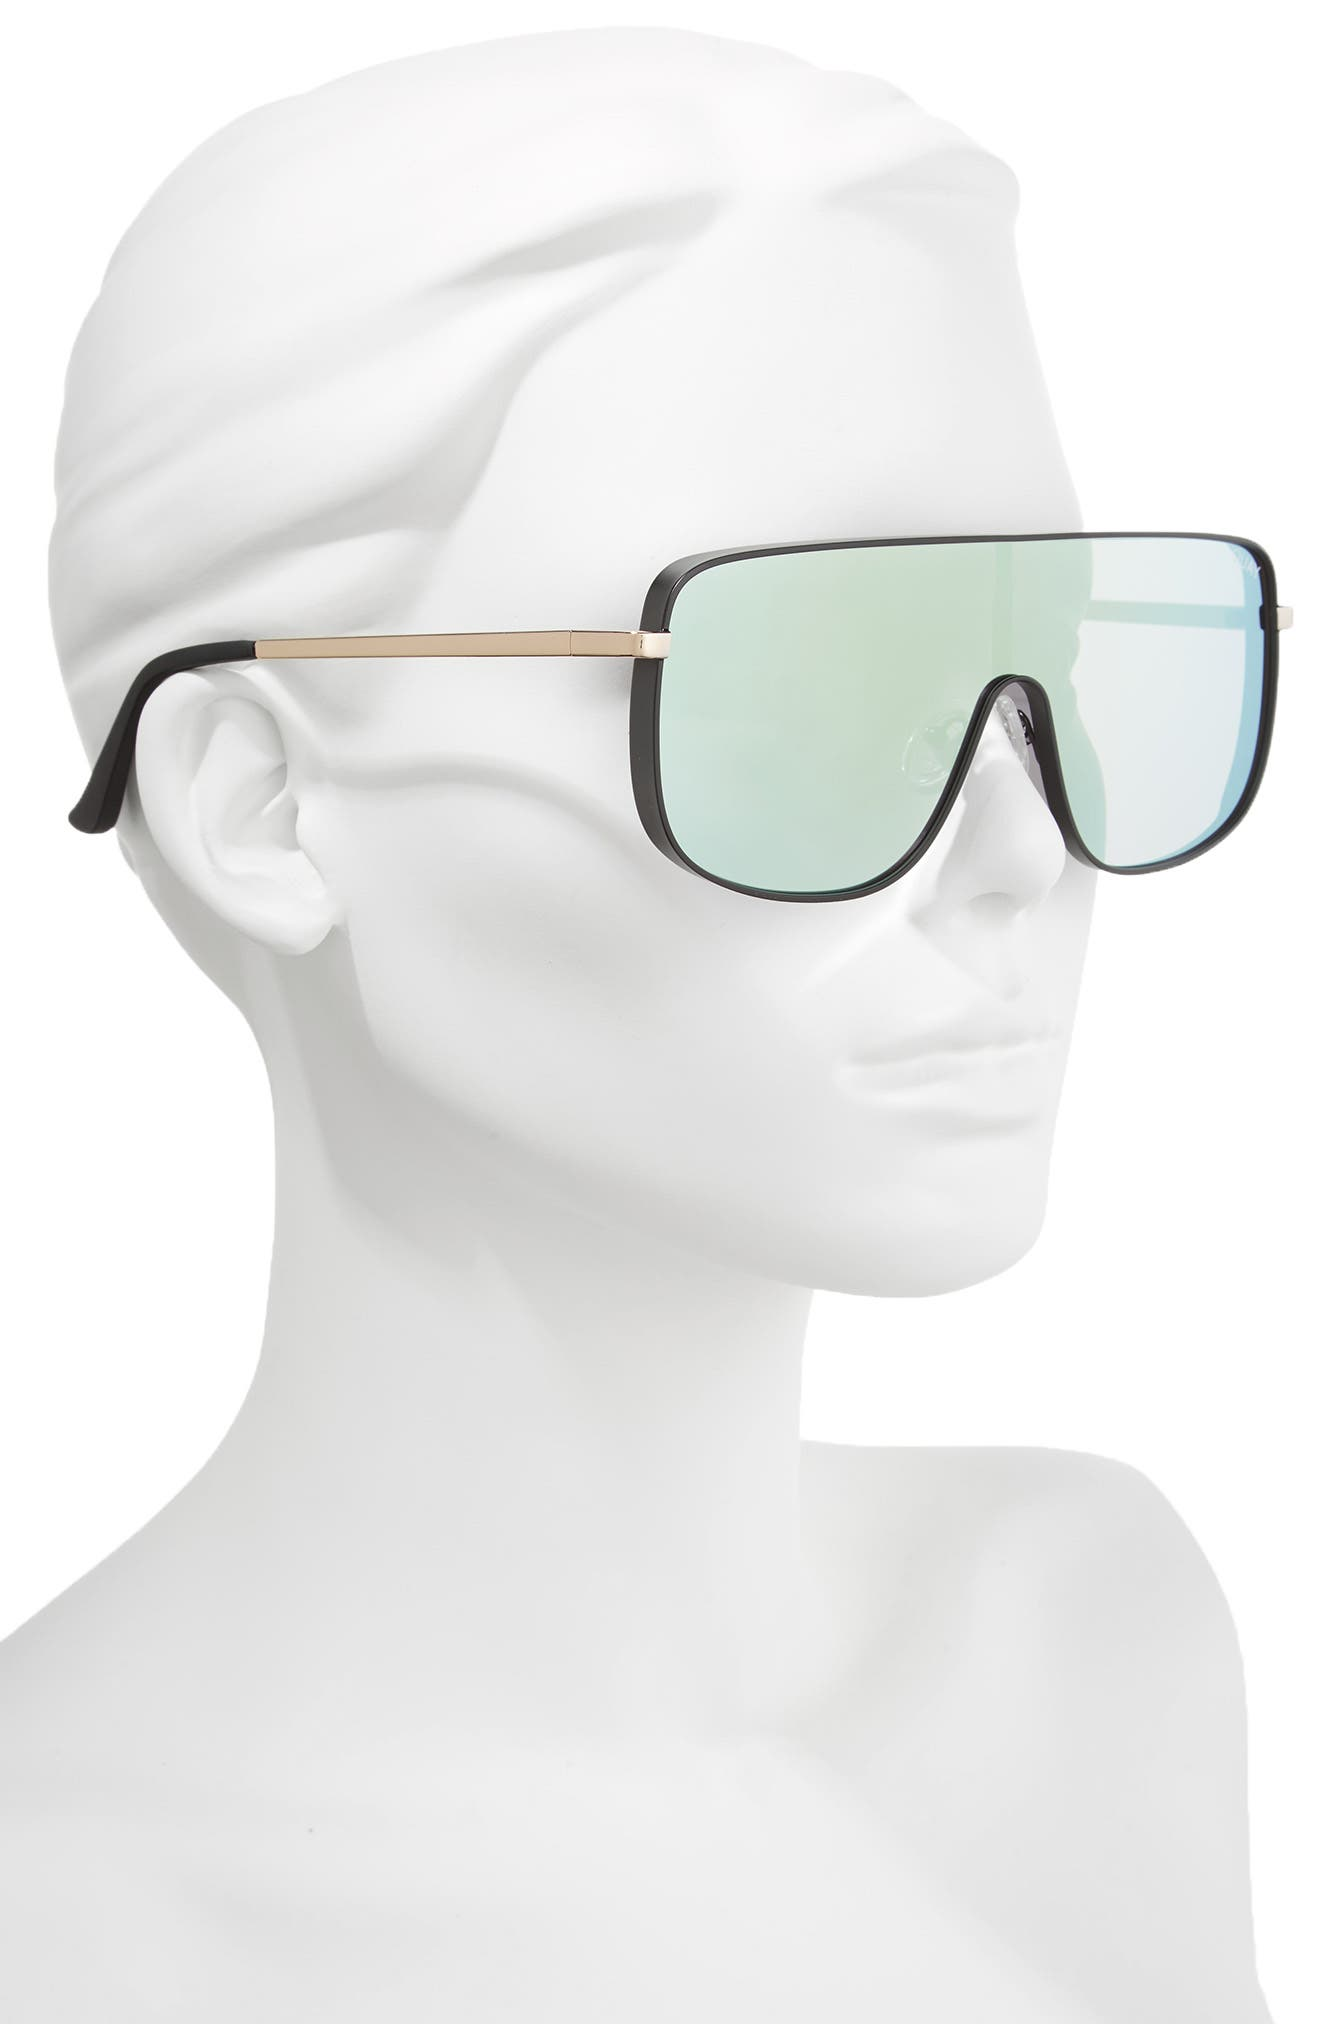 Unbothered 68mm Shield Sunglasses,                             Alternate thumbnail 2, color,                             Black/ Mint